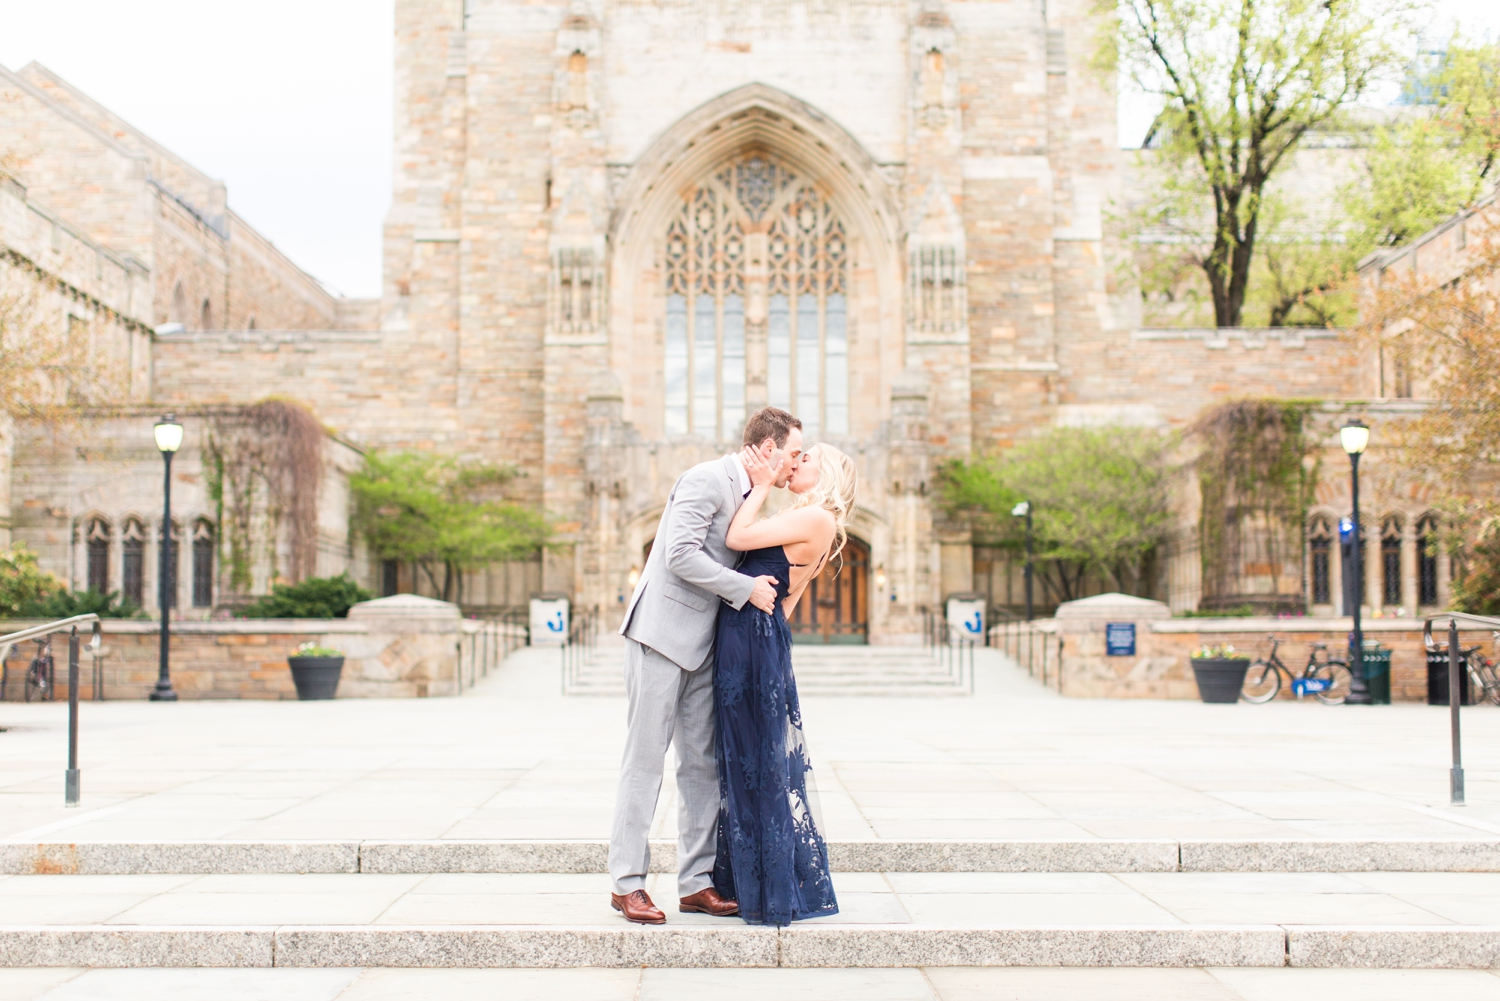 sterling-library-yale-university-engagement-session-new-haven-connecticut-wedding-photographer-andrea-chris-shaina-lee-photography-photo-11.jpg